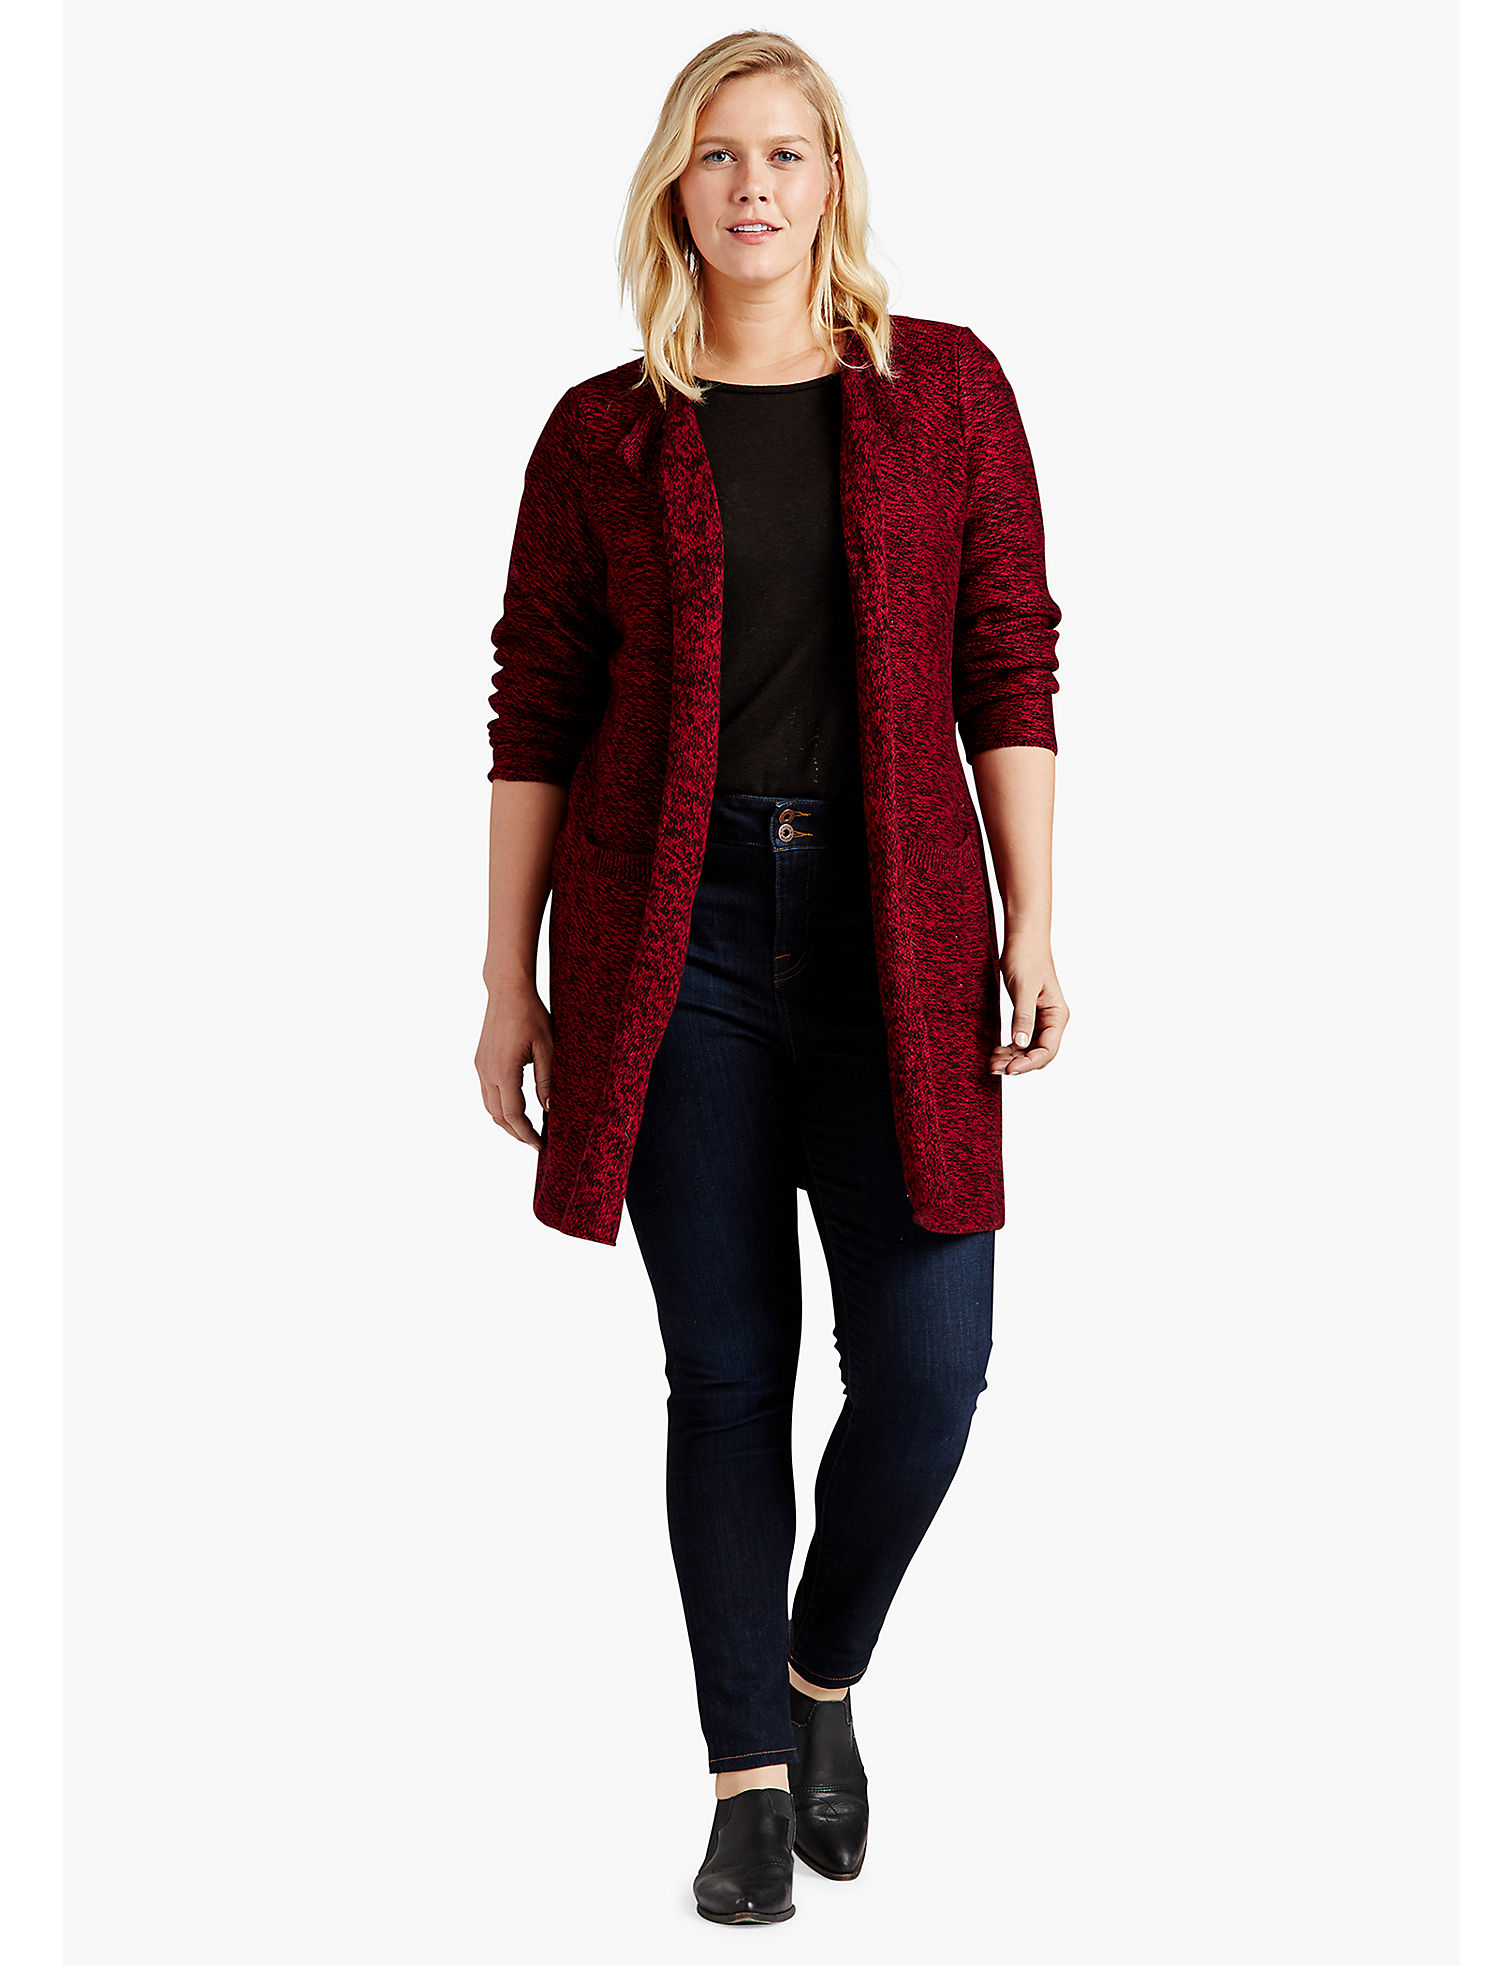 MARLED WATERFALL CARDIGAN - Lucky Brand 2.0